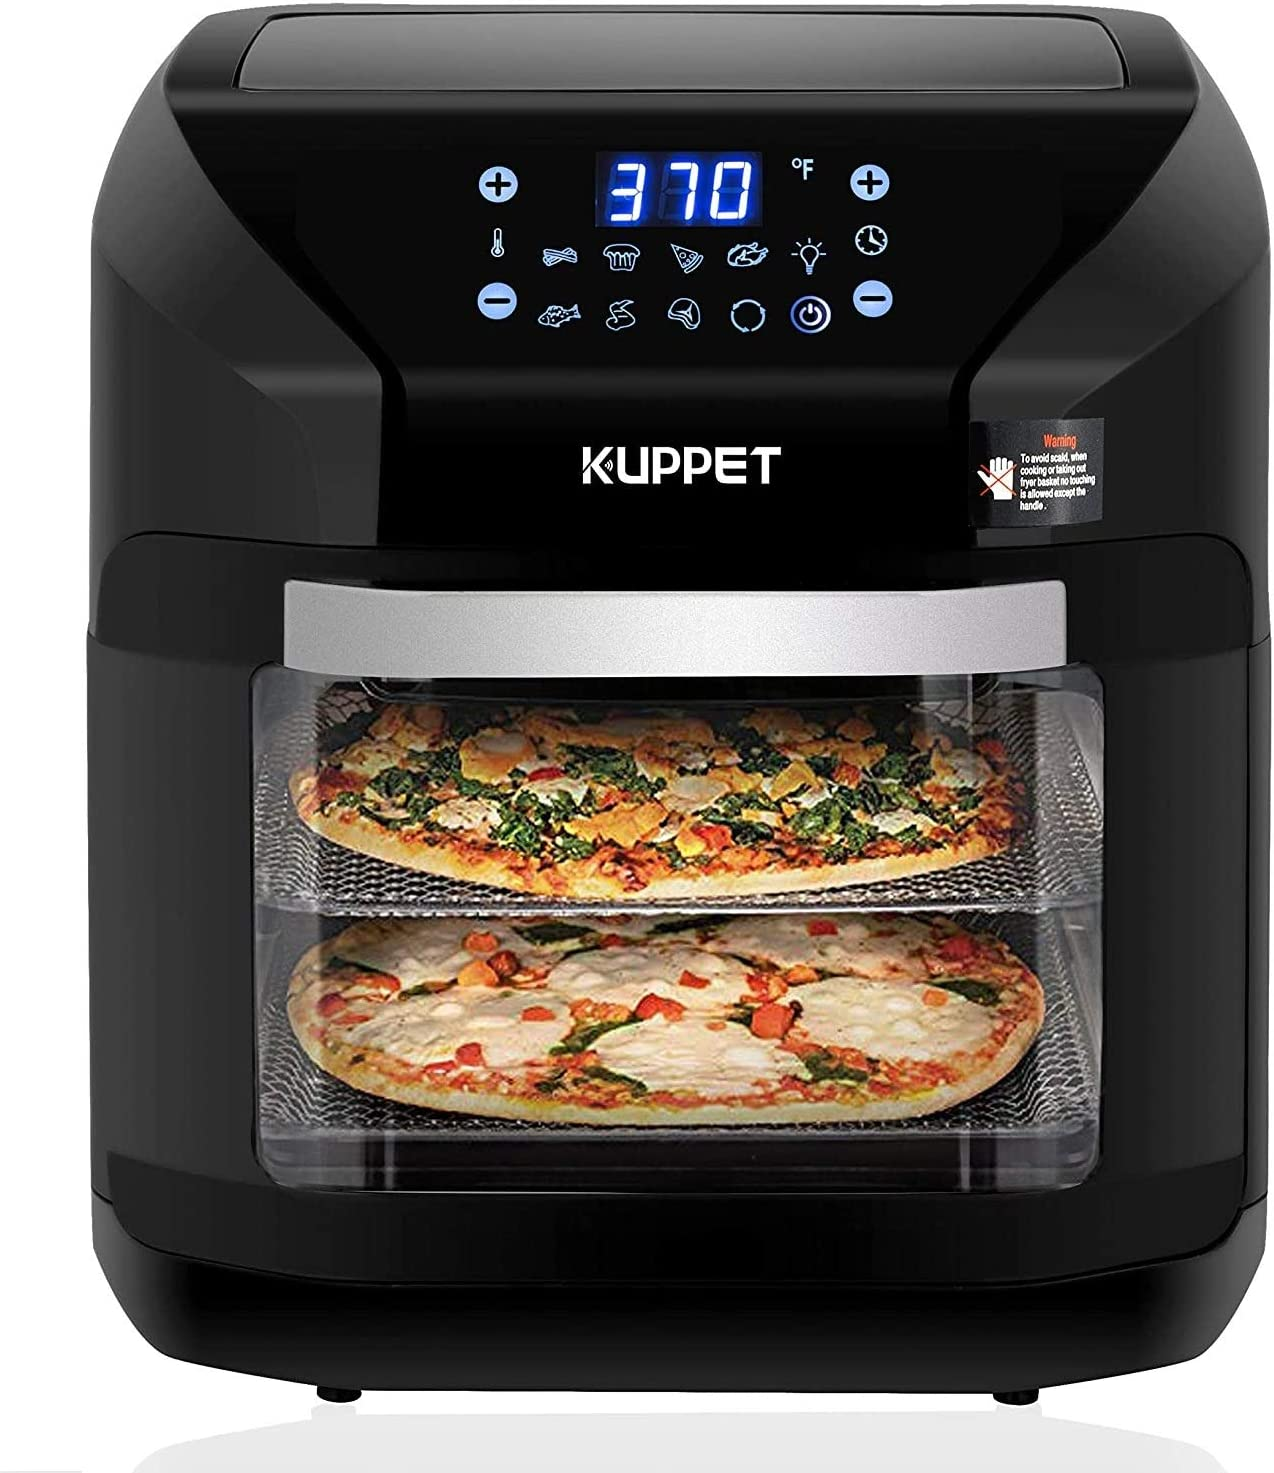 KUPPET Air Fryer 10QT Electric Hot Air Fryer, Roasting, Reheating & Dehydrating, Touch Screen Oven Oilless Cooker Extra Large Capacity Nonstick Fry Basket with Additional Accessories, 1700W - Black